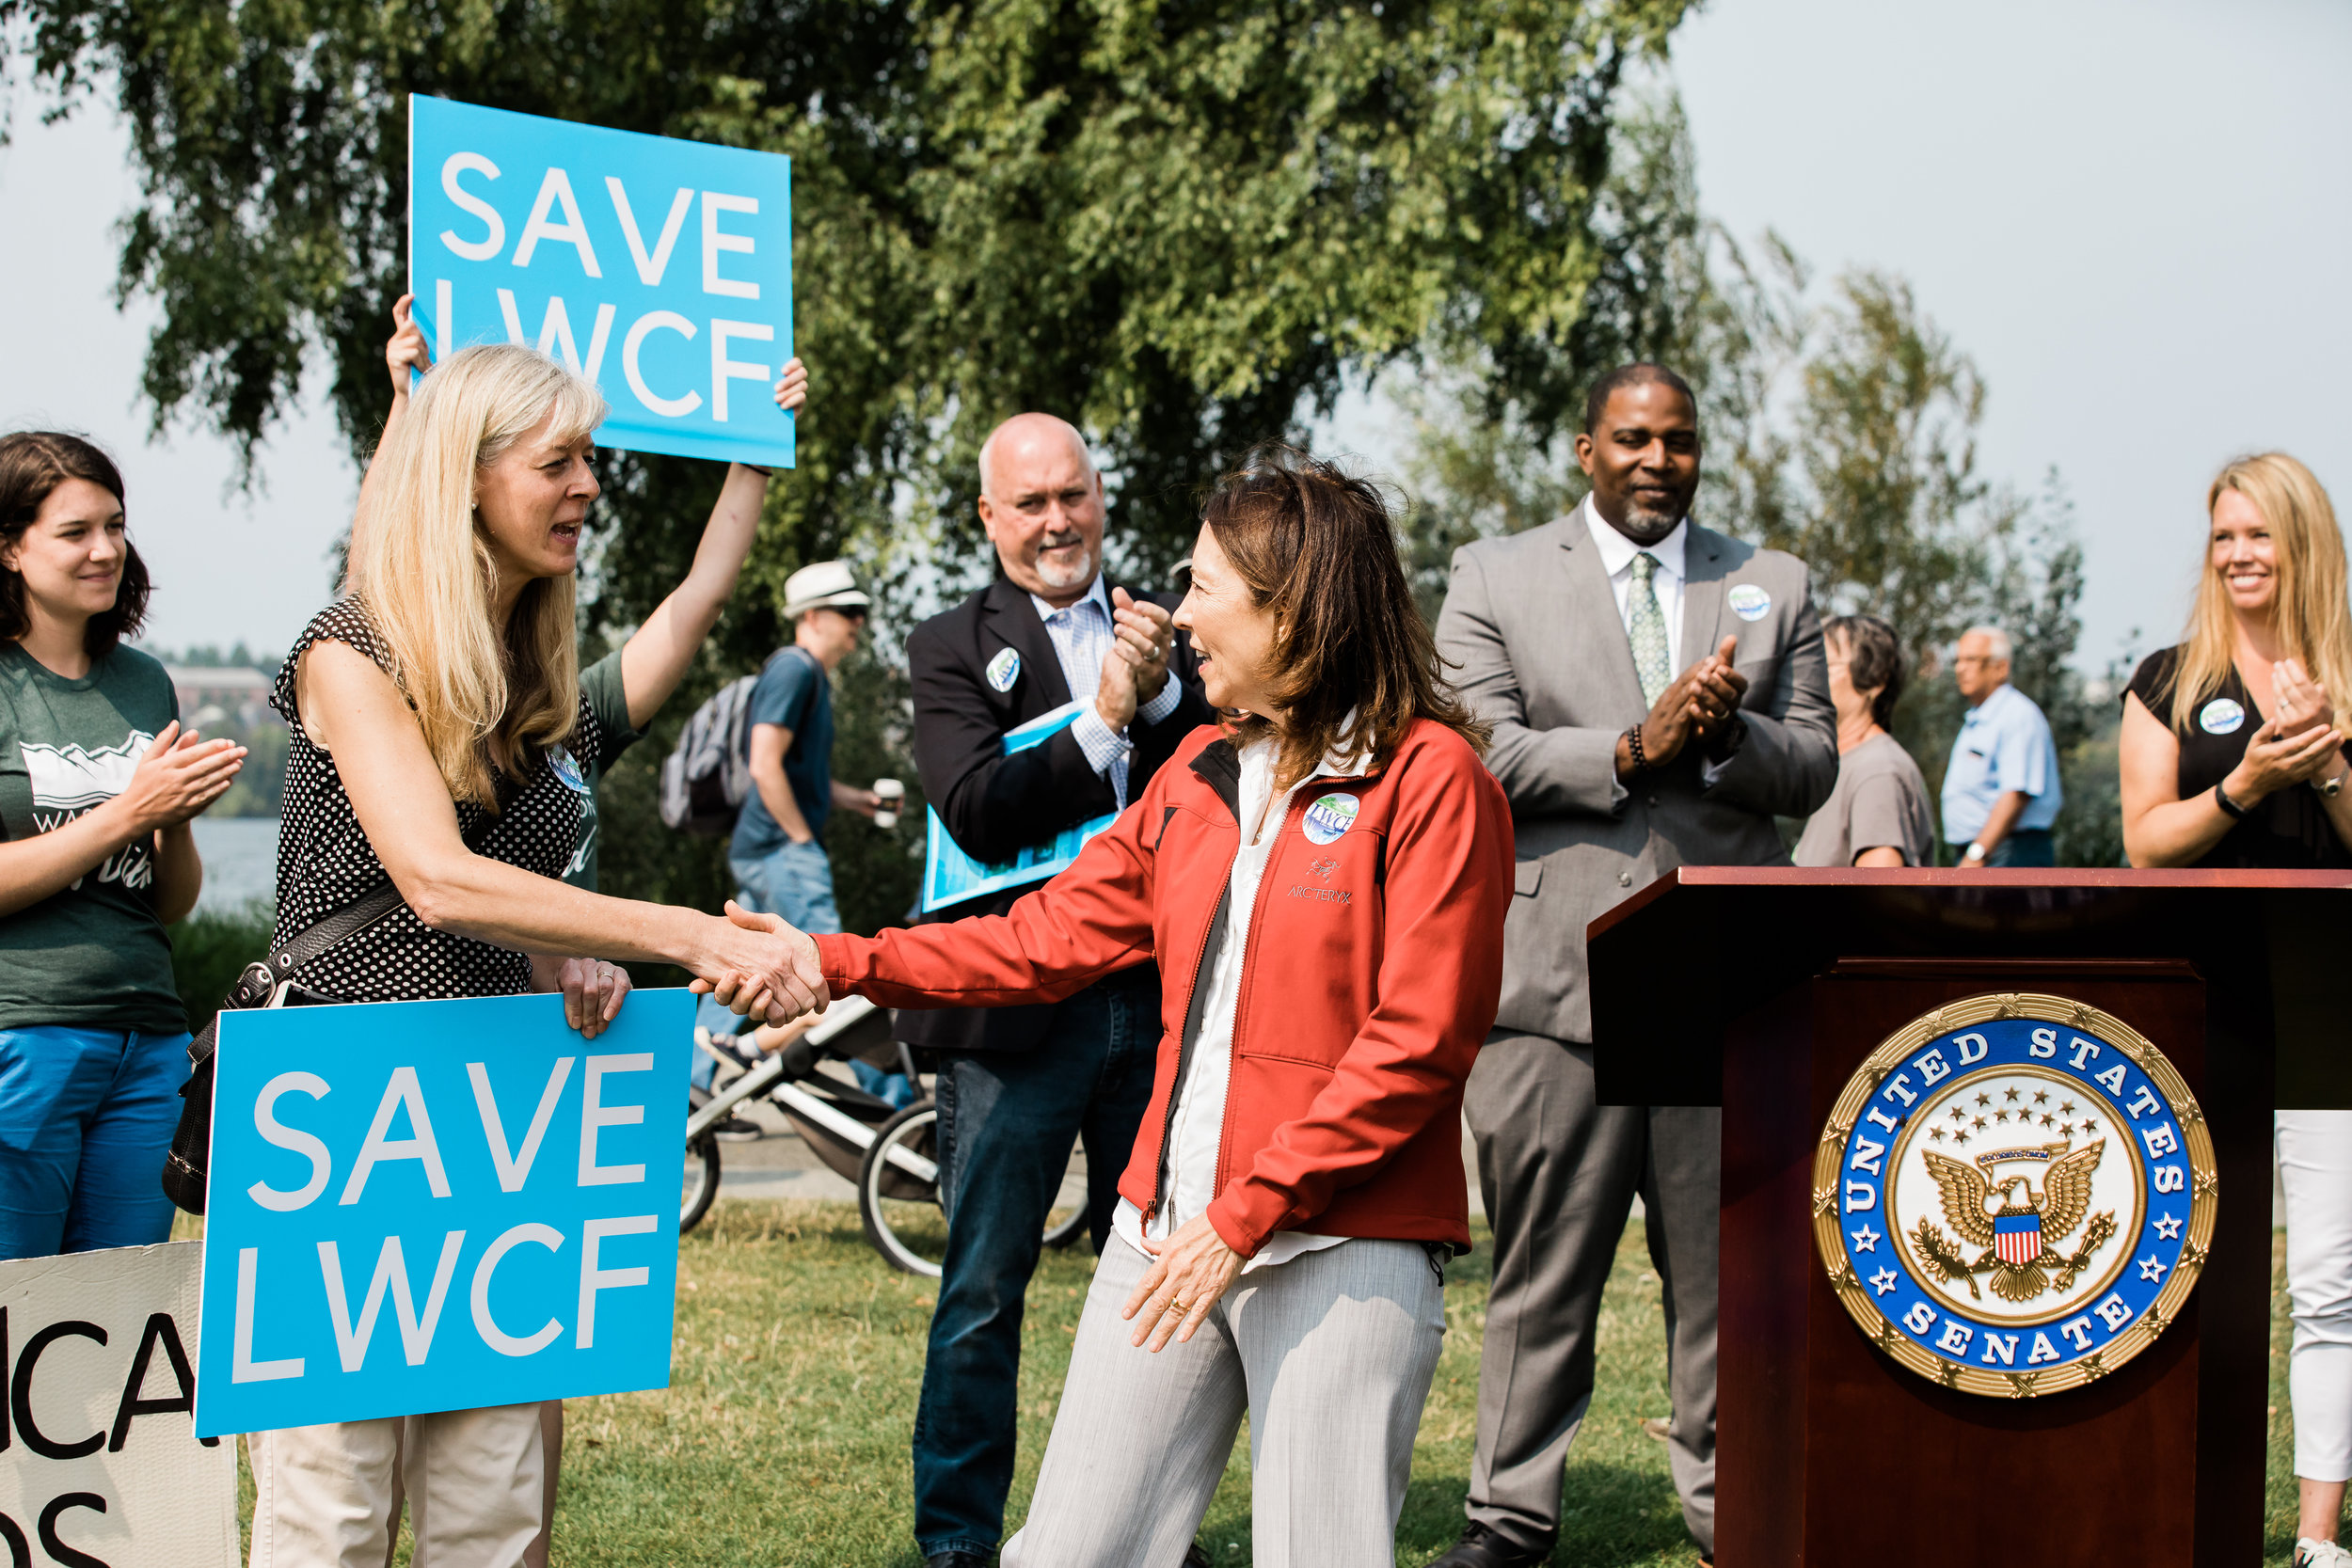 We are part of a nationwide coalition of more than 1400 organizations calling for permanent reauthorization and full funding for LWCF. Here, Joanna Grist from the national  LWCF Coalition  shakes hands with Sen. Cantwell. Photo by Stevie Rotella